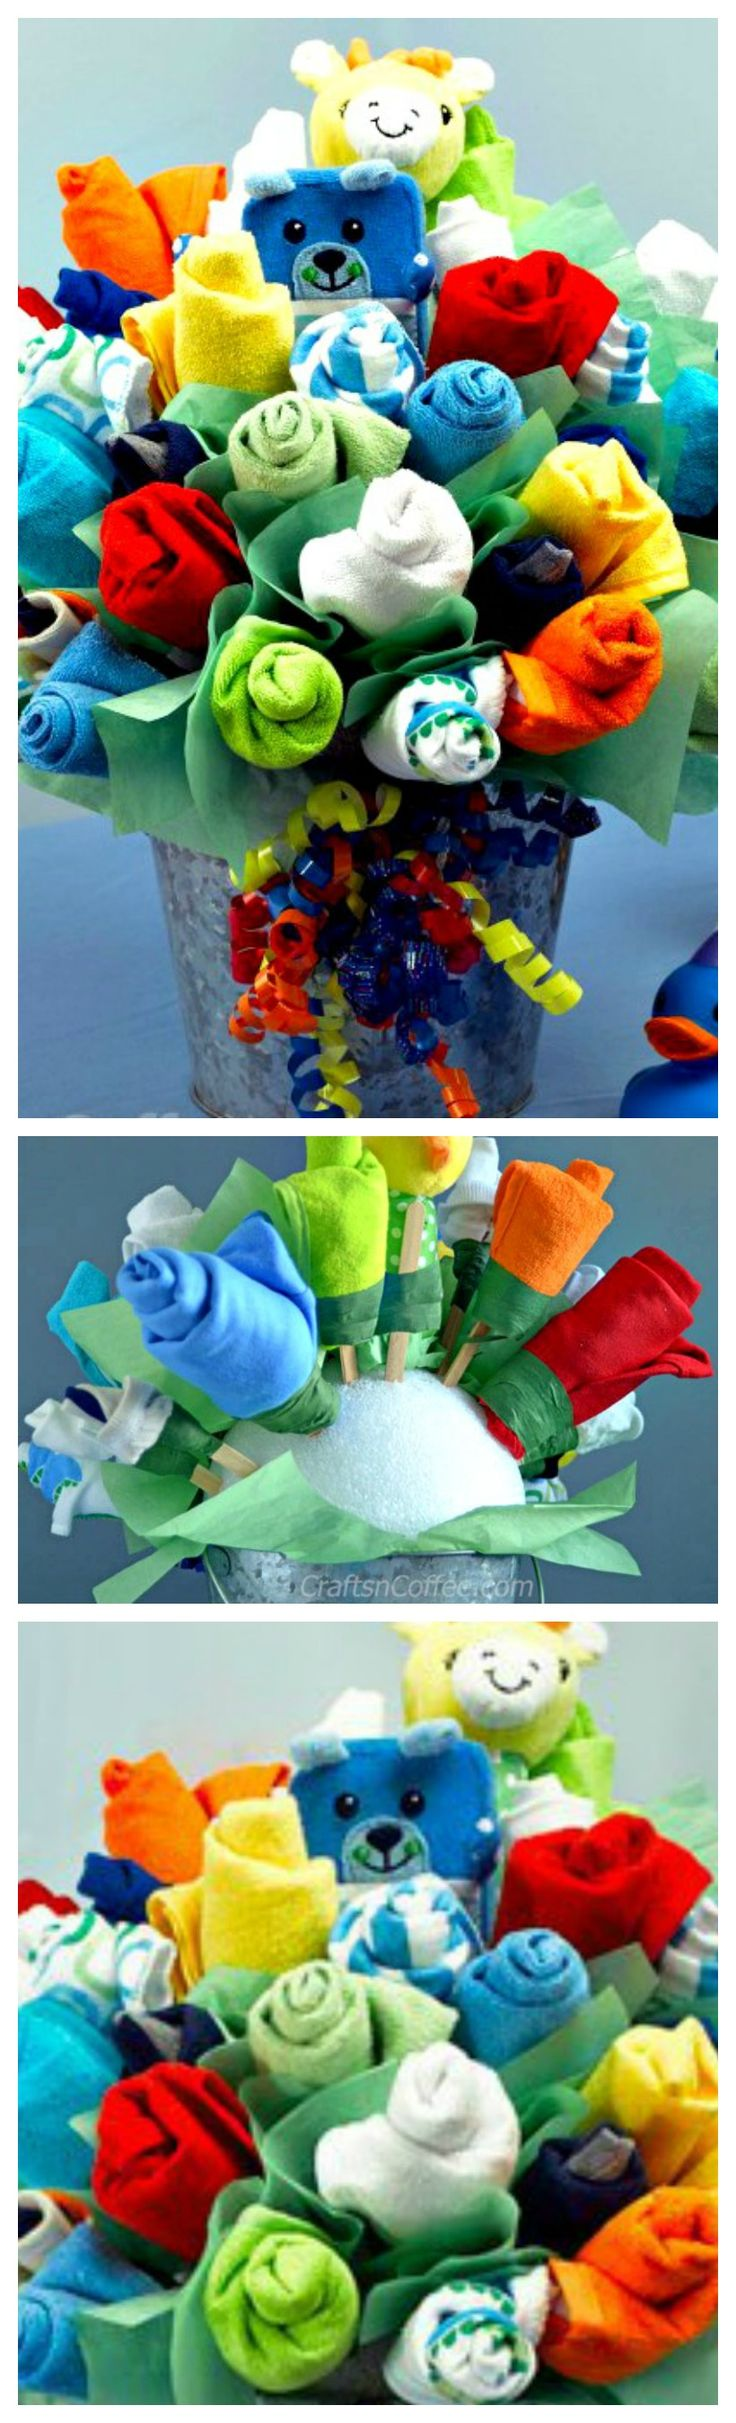 How To Make An Adorable Baby Bouquet ~ It's packed with little goodies every baby needs – bibs, washcloths, socks and onesies and two soft rattles... Is there a mom-to-be who wouldn't love this Baby Bouquet? I think not!